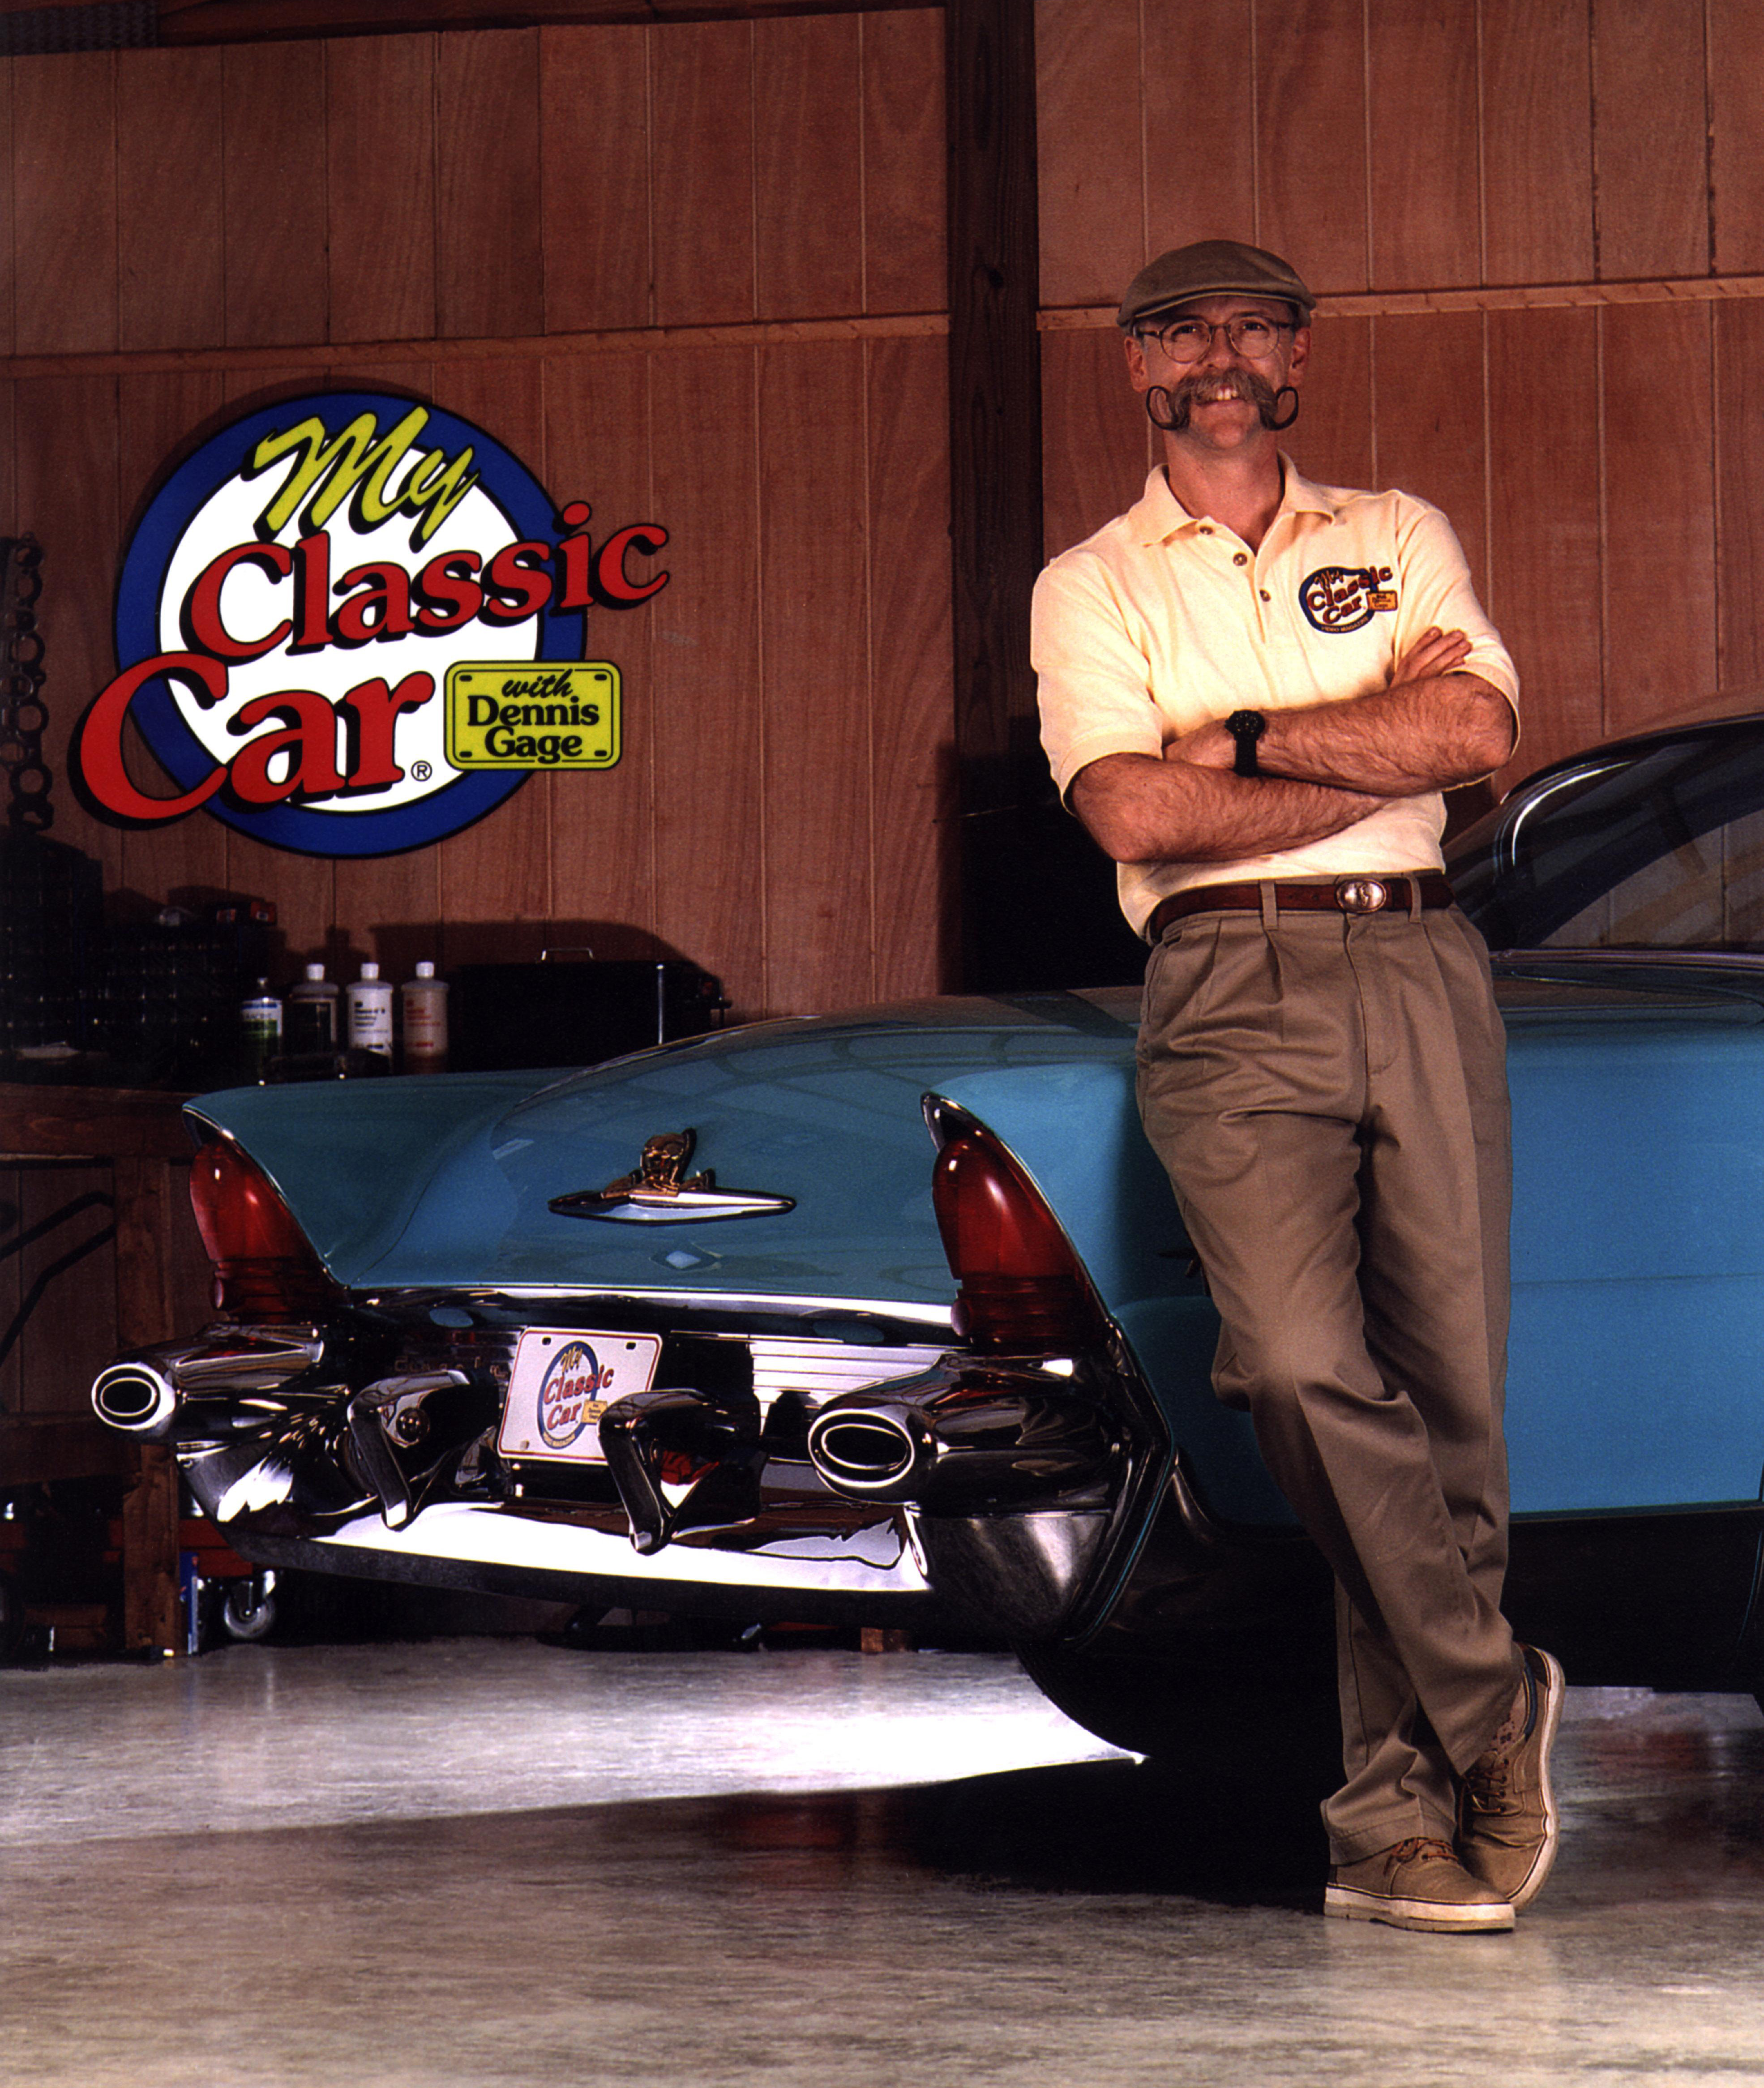 Dennis Gage of My Classic Car